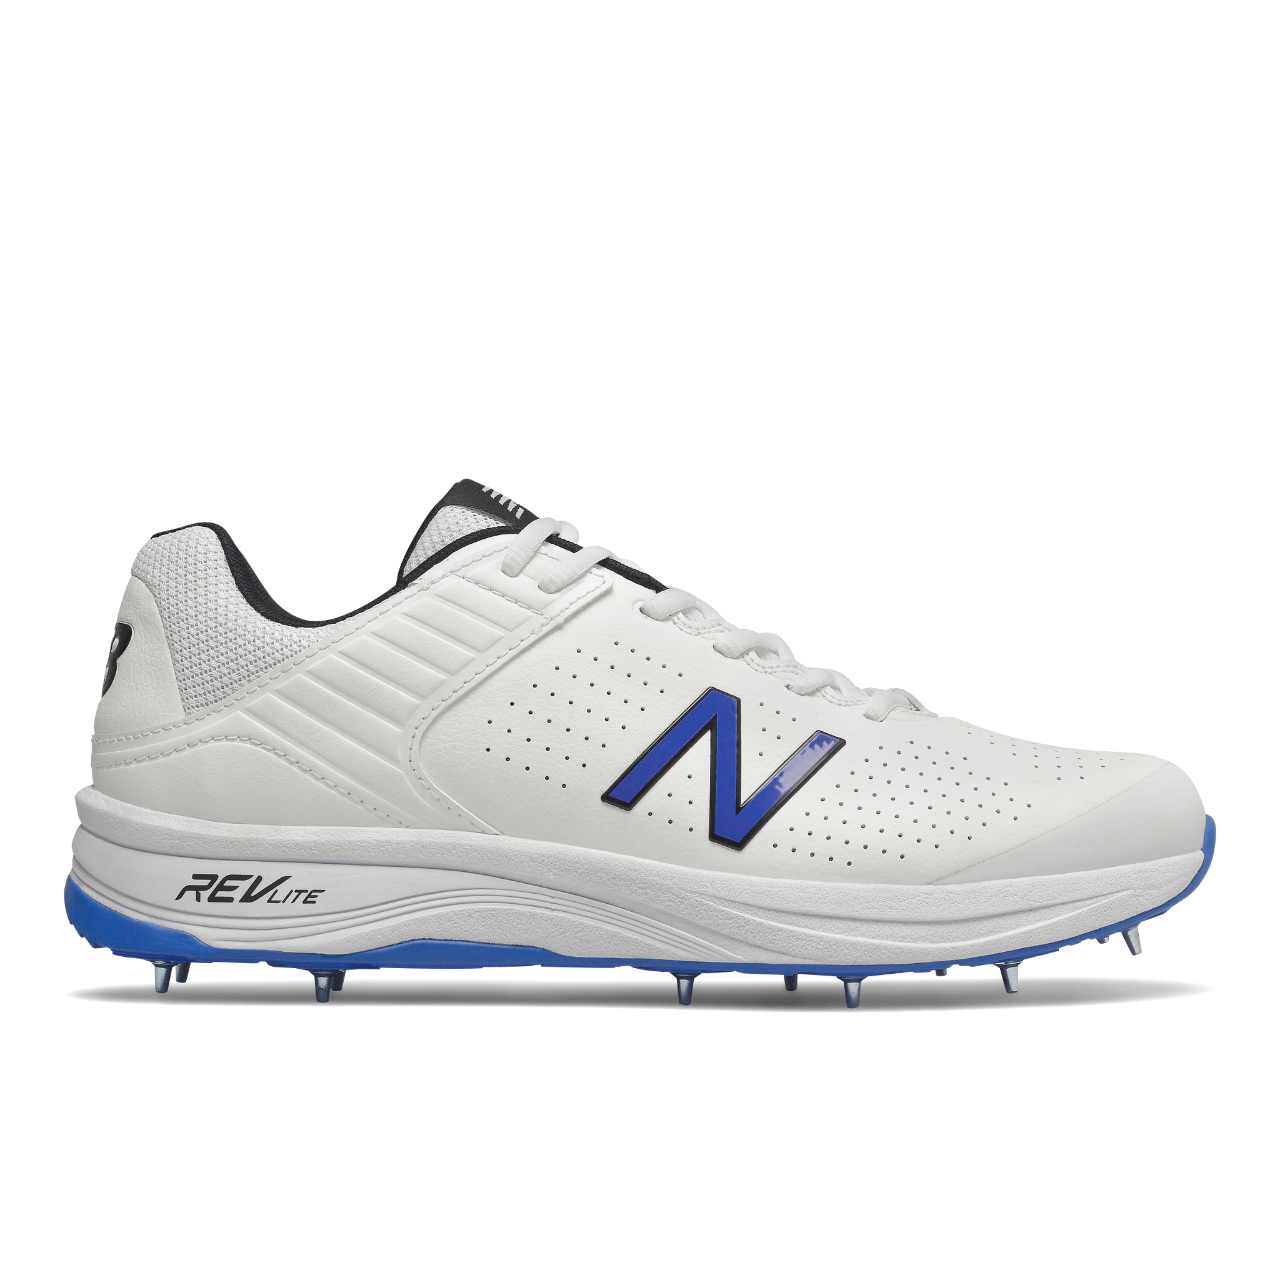 2021 New Balance CK4030 B4 Cricket Shoes